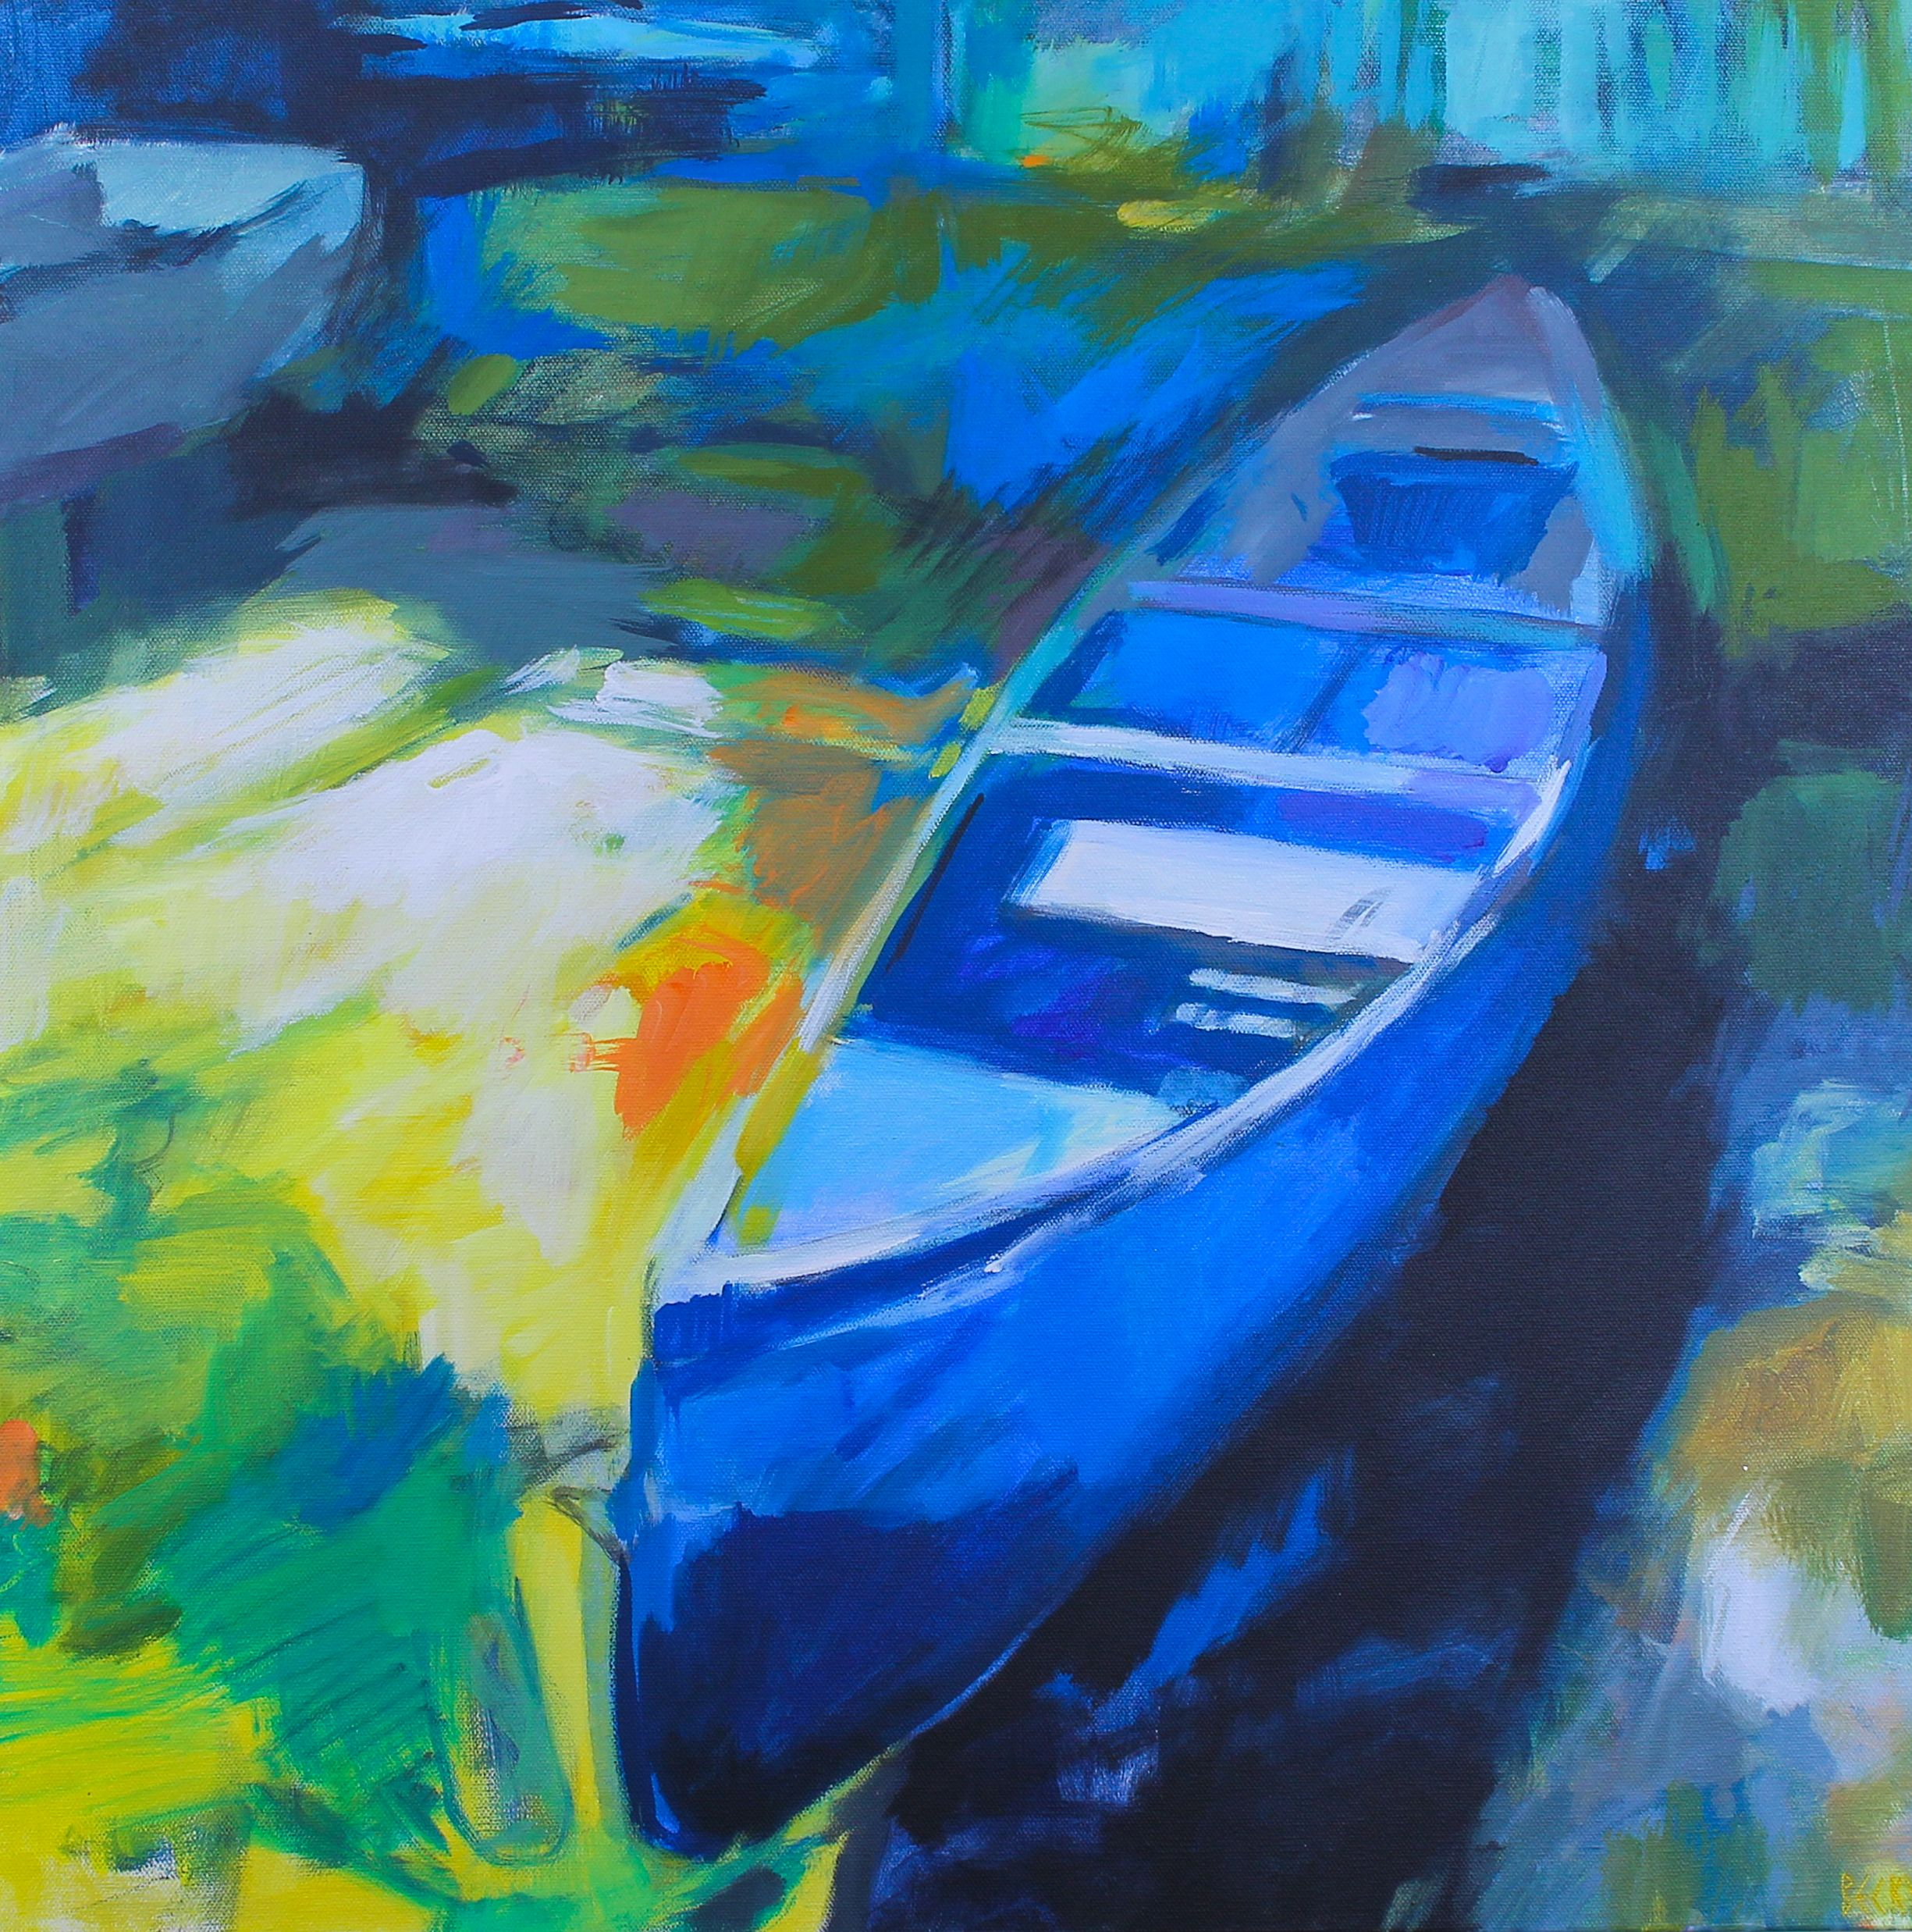 Can You Canoe 2, impressionist canoe painting by Becky Holuk | Effusion Art Gallery +  Glass Studio, Invermere BC